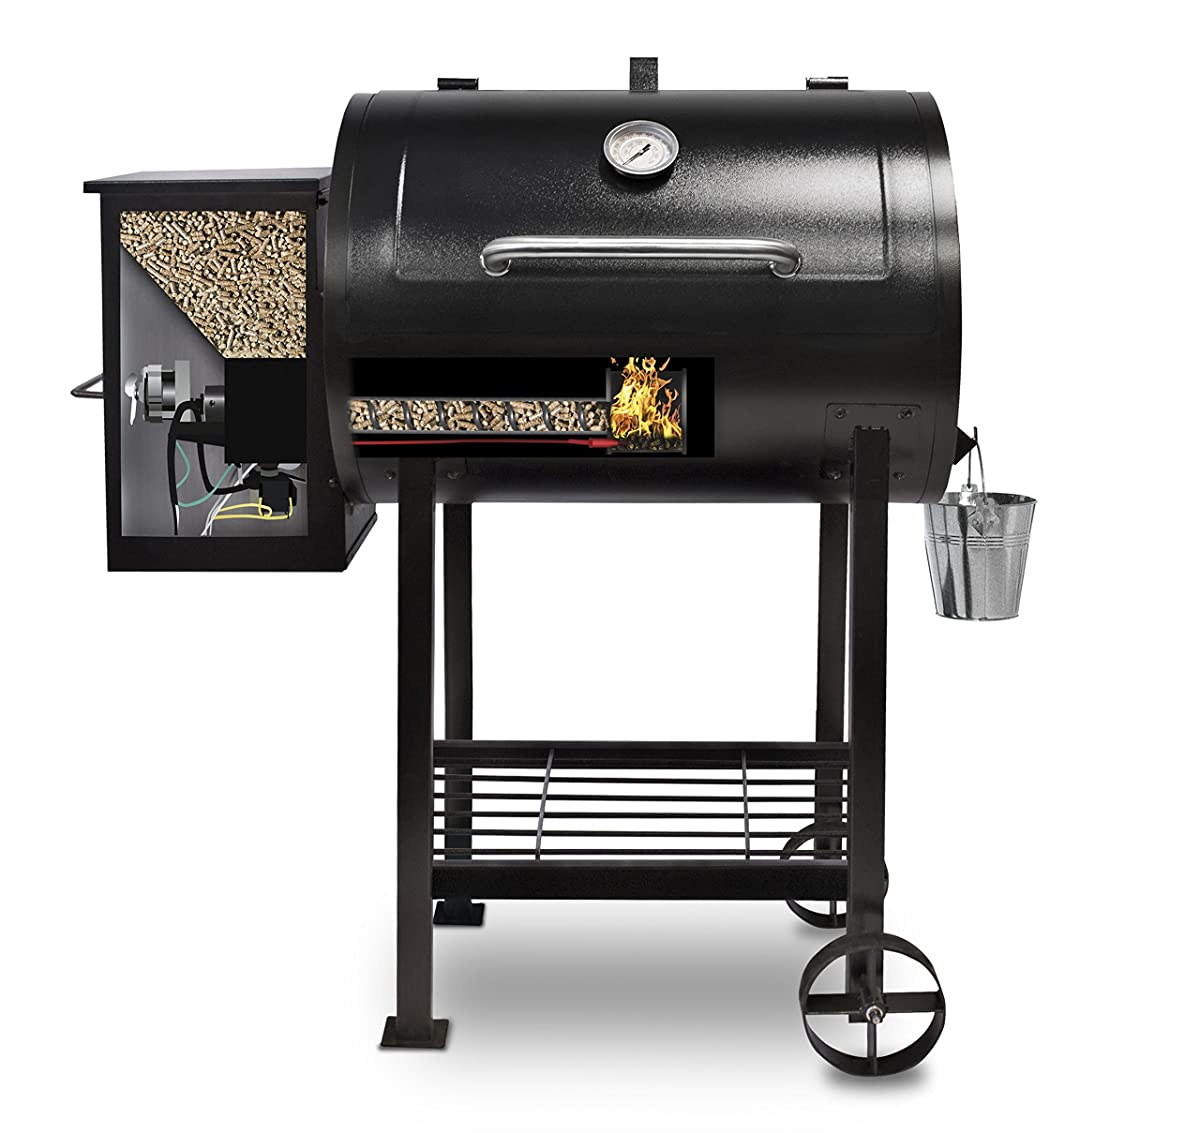 Pit Boss 71700FB Pellet Grill with Flame Broiler, 700 sq. in.